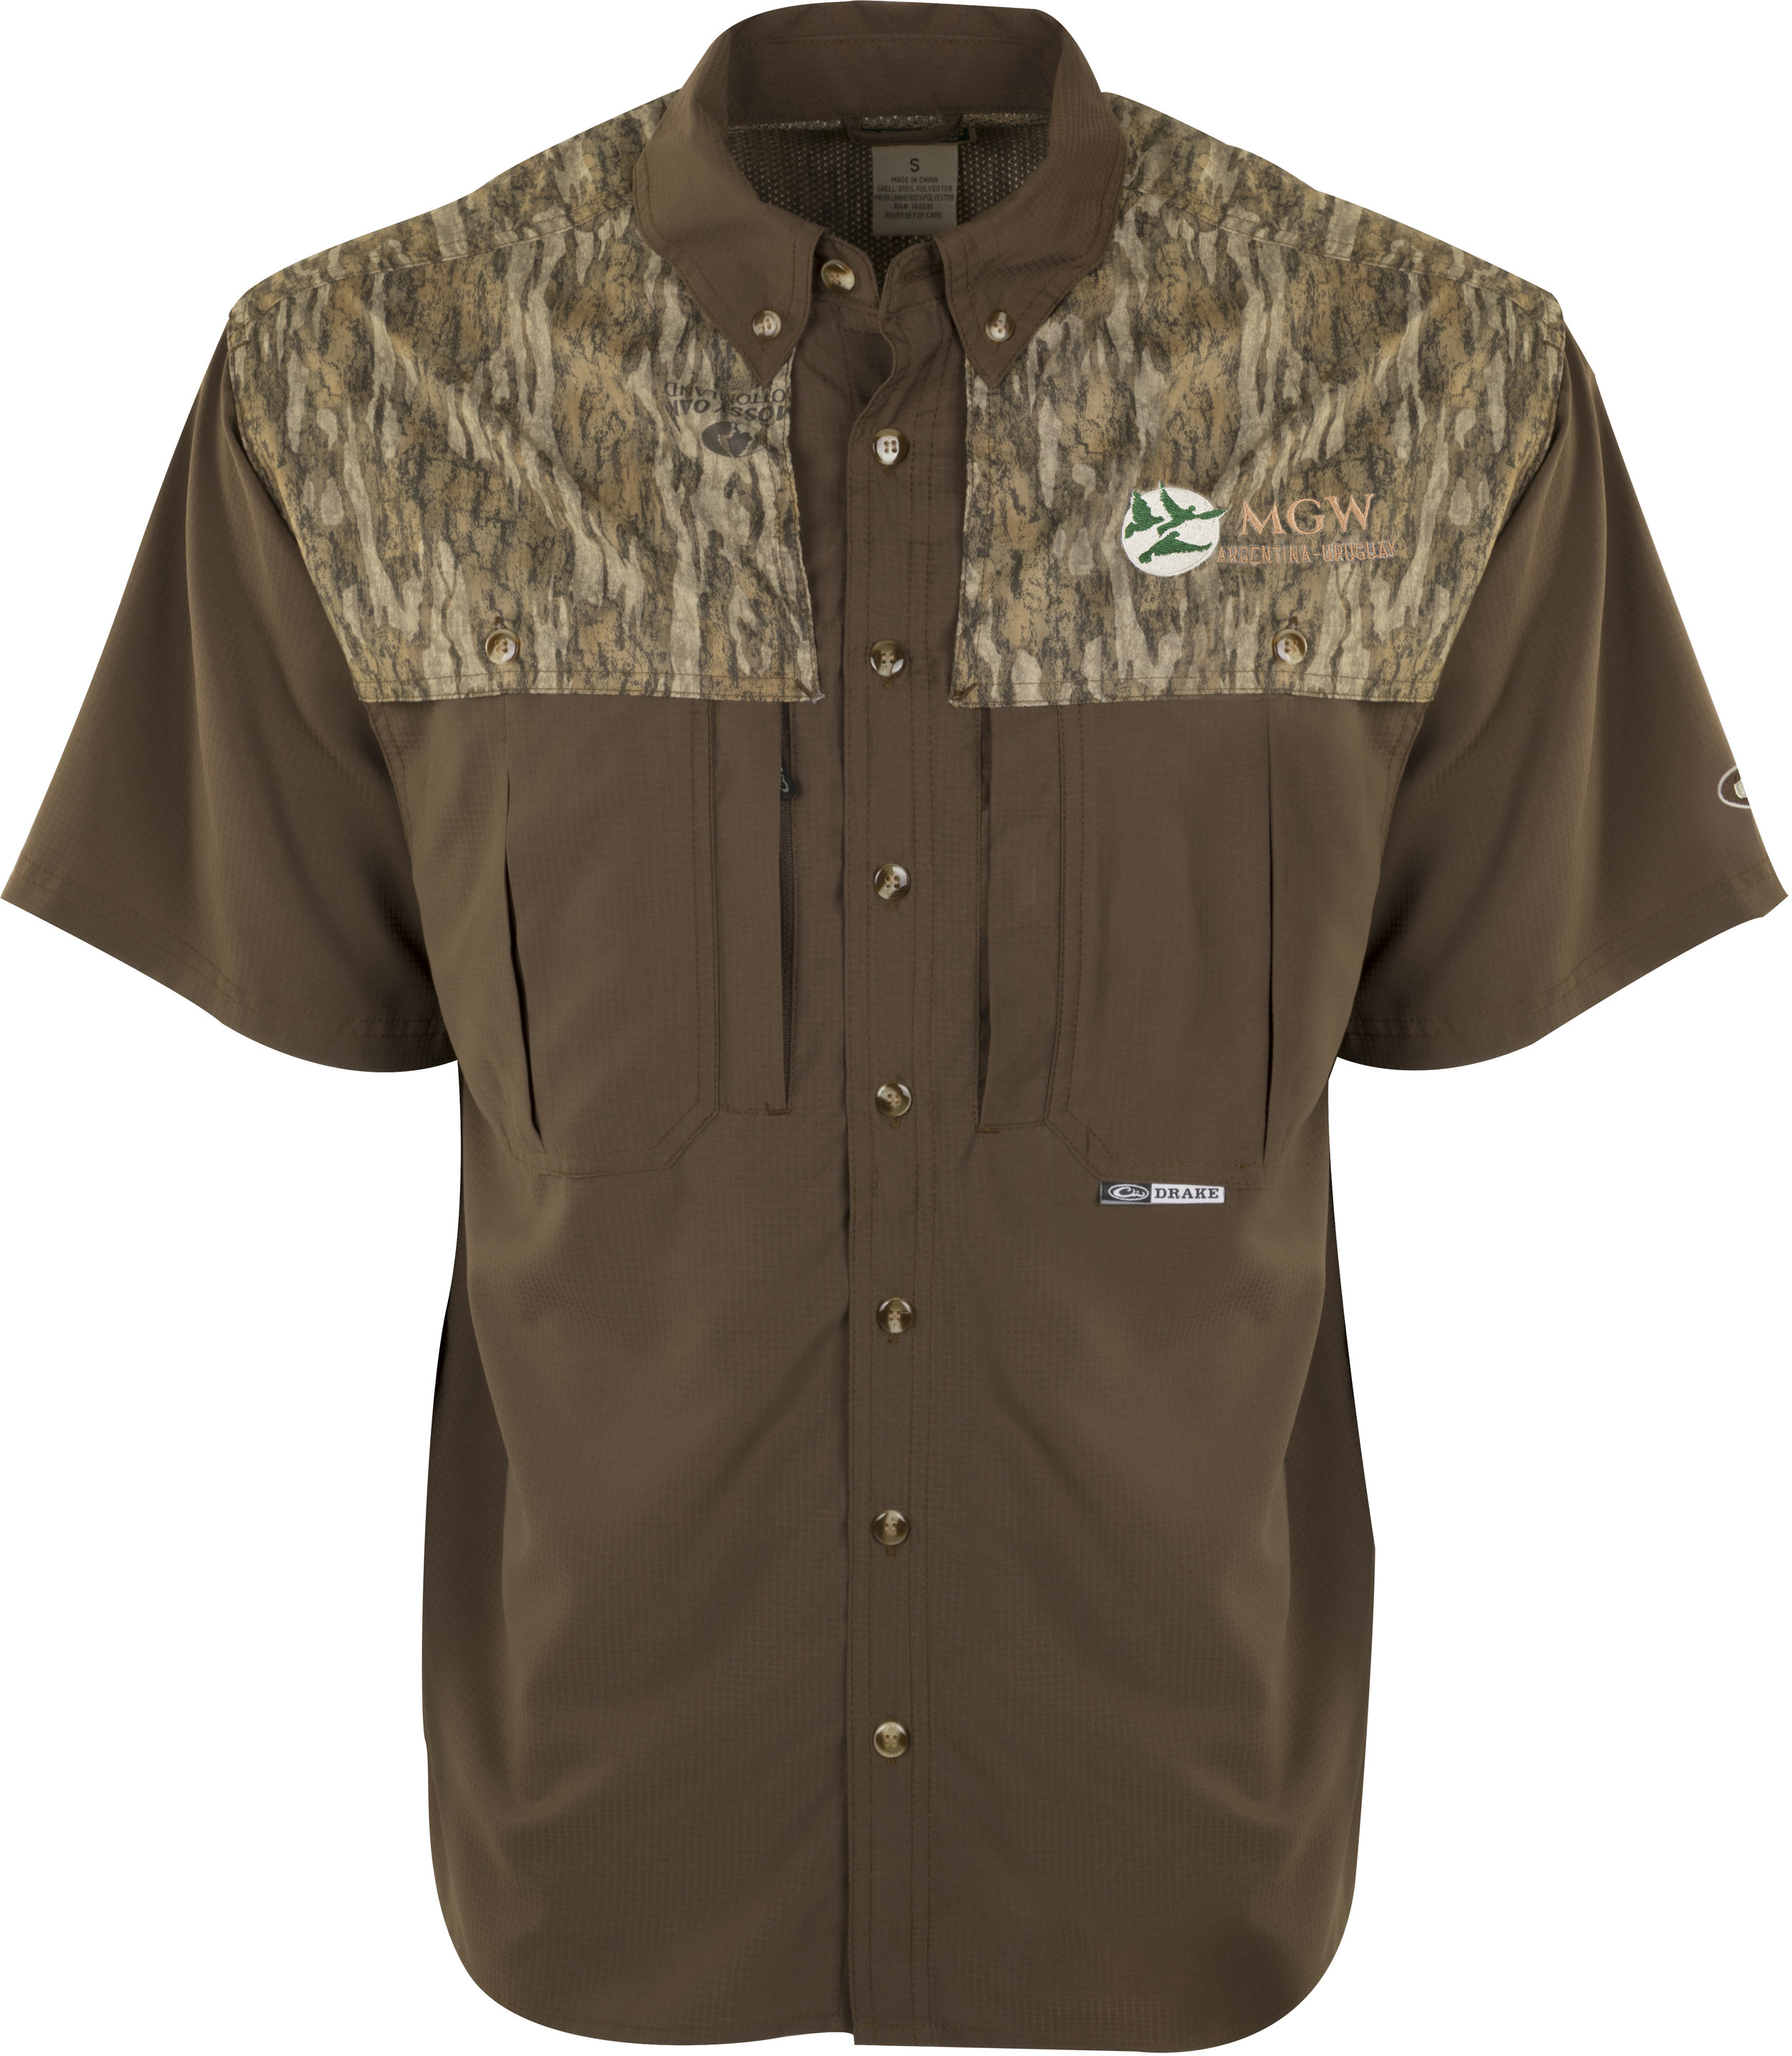 Drake Two-Tone Bottomland Camo Flyweight Wingshooter's Shirt S/S - $80